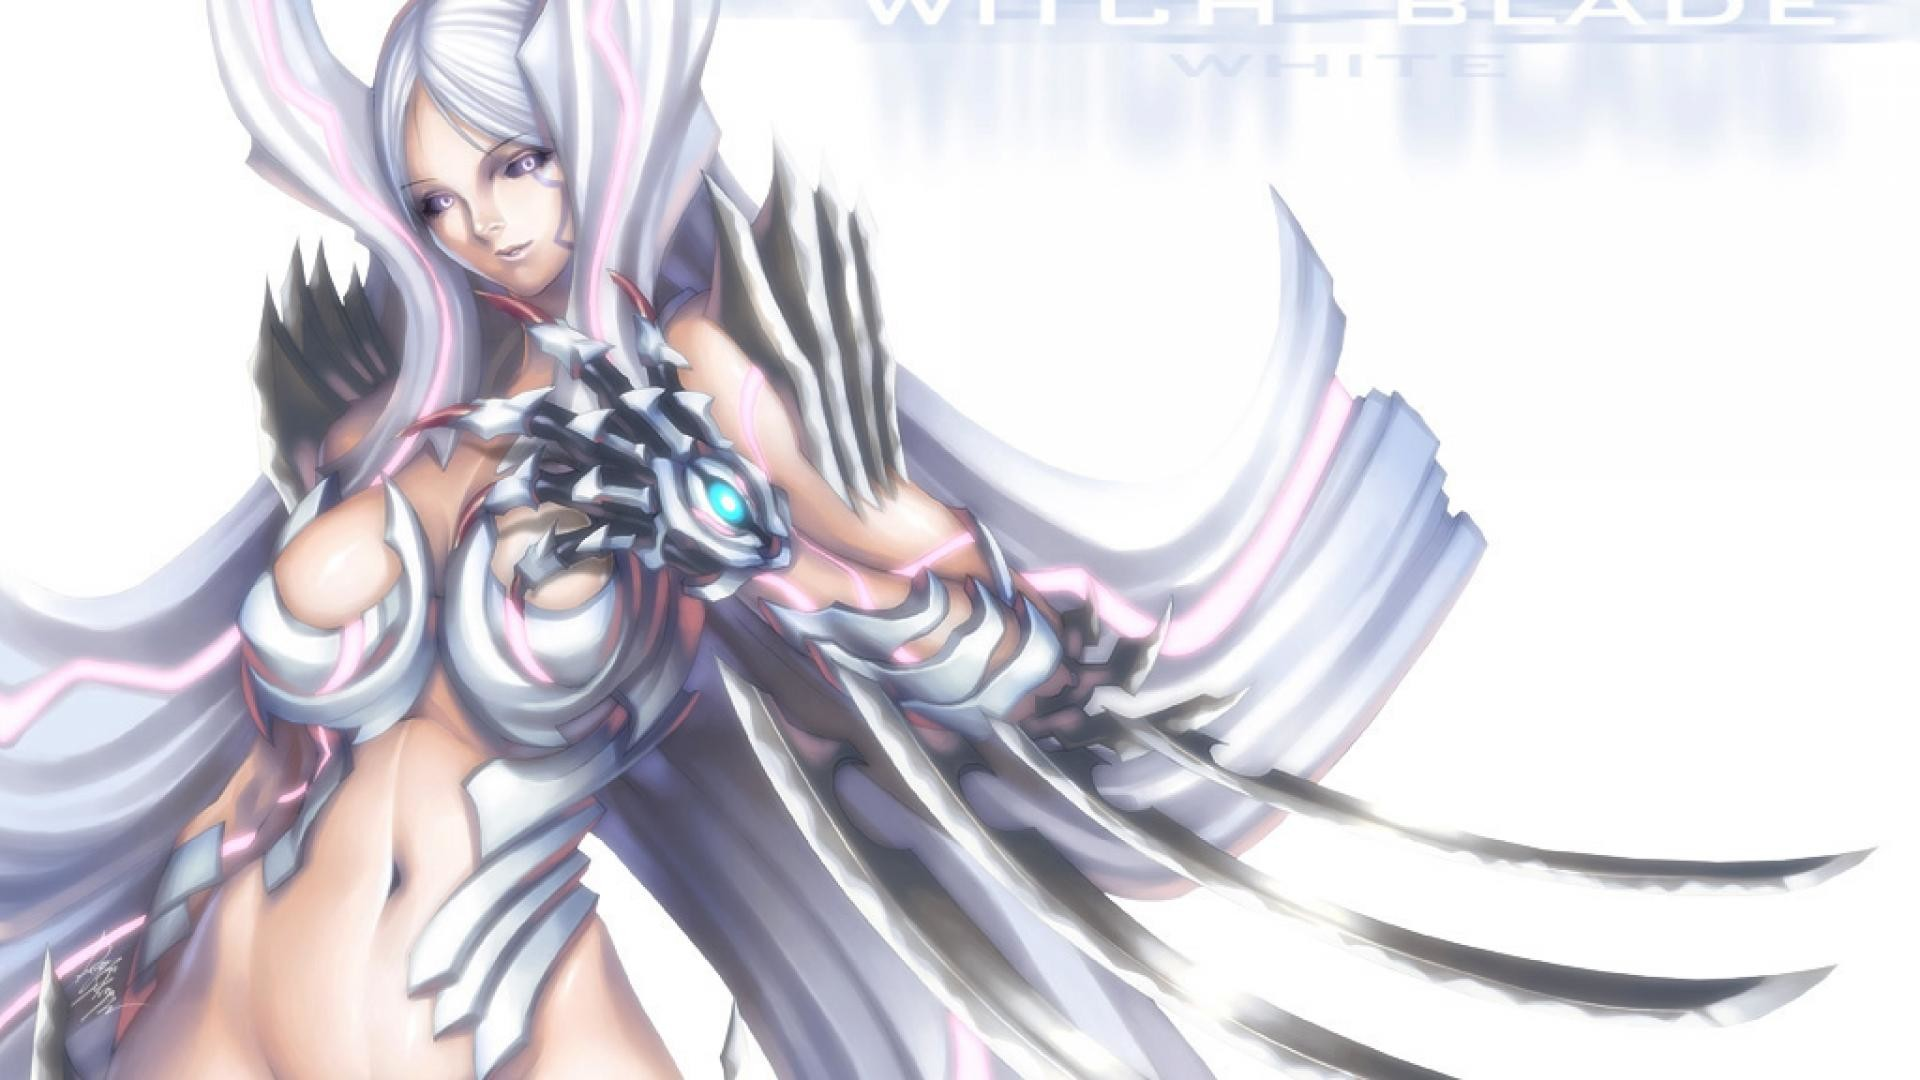 1920x1080 witchblade HD (16:9): 1280x720 1366x768 1600x900